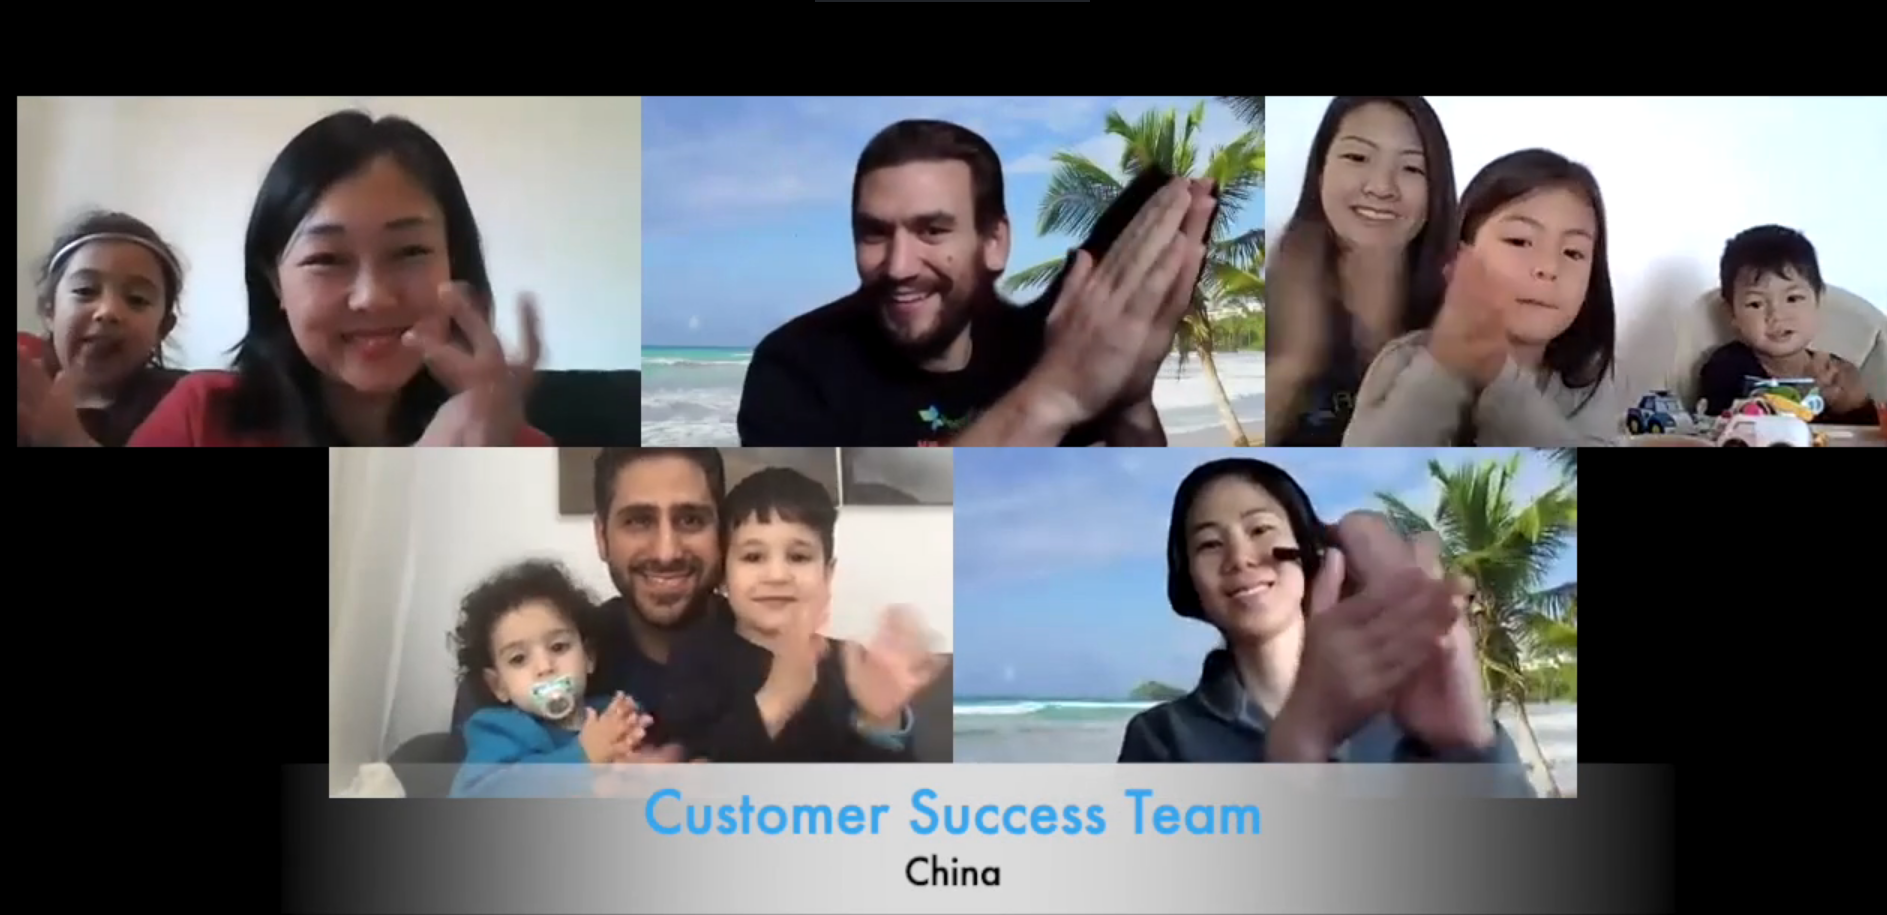 Appsflyer China Customer Success Team